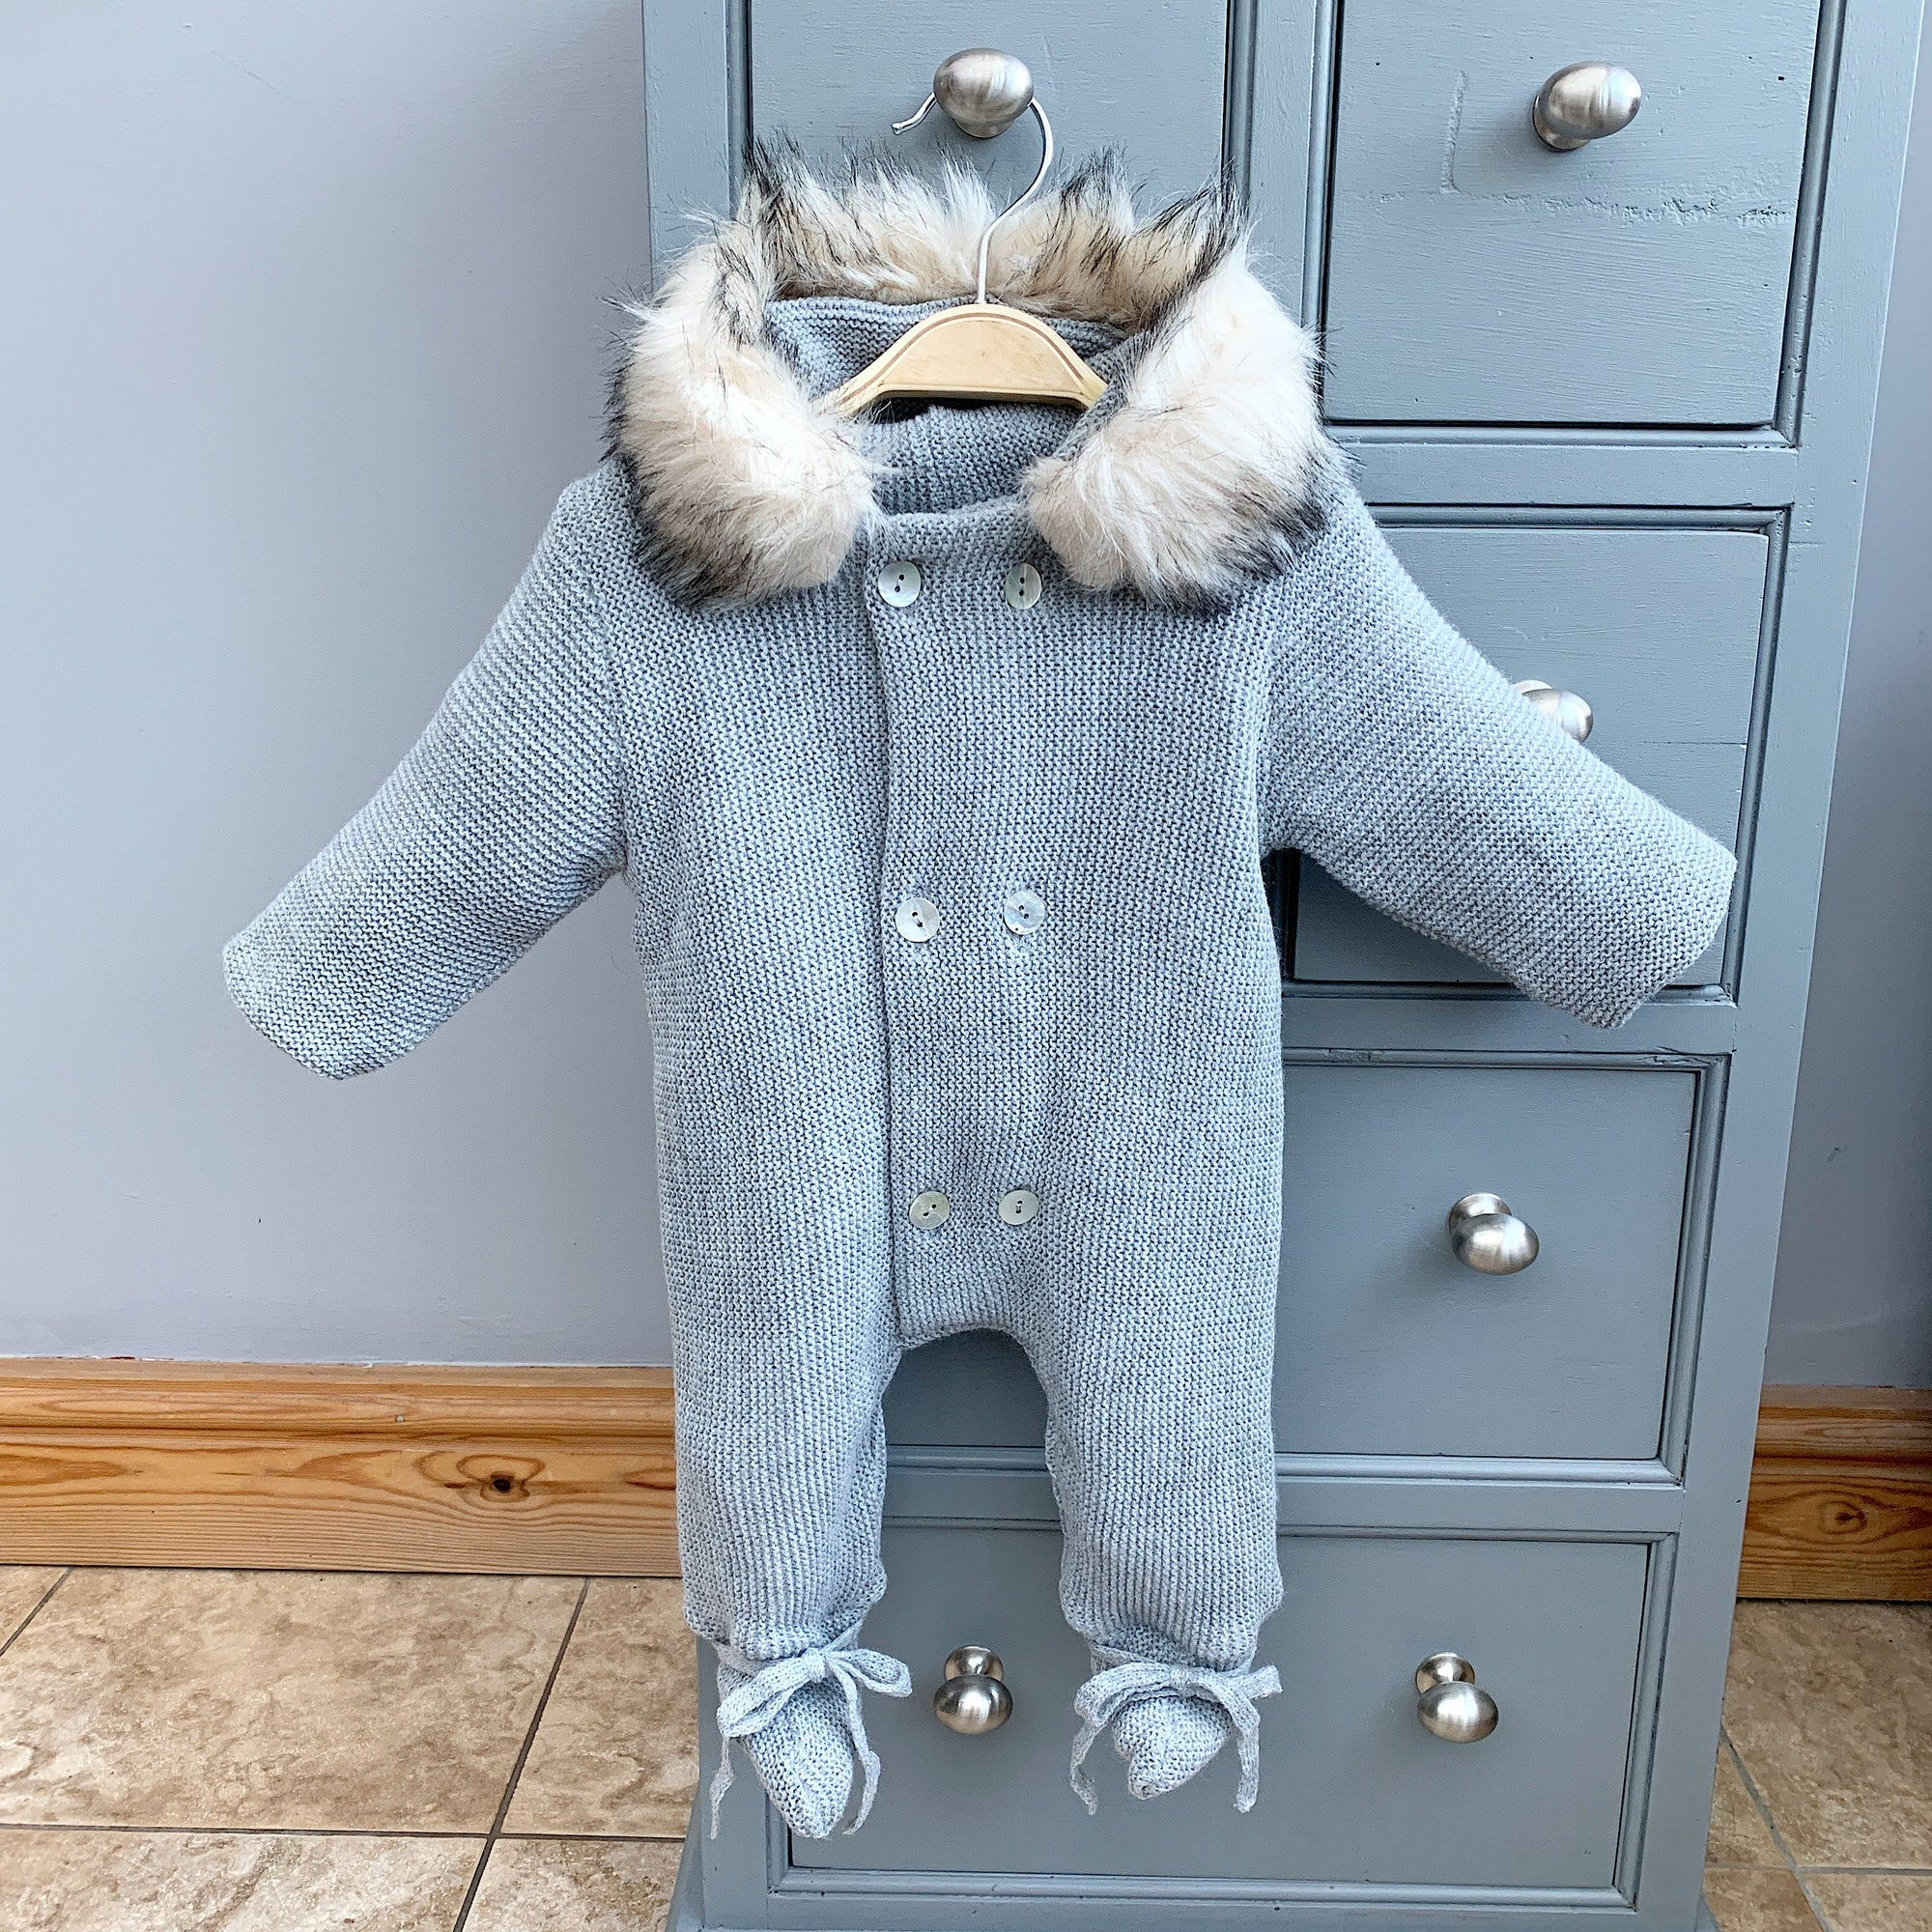 Mebi Light Grey Knitted Pramsuit with Faux Fur Trim | Millie and John